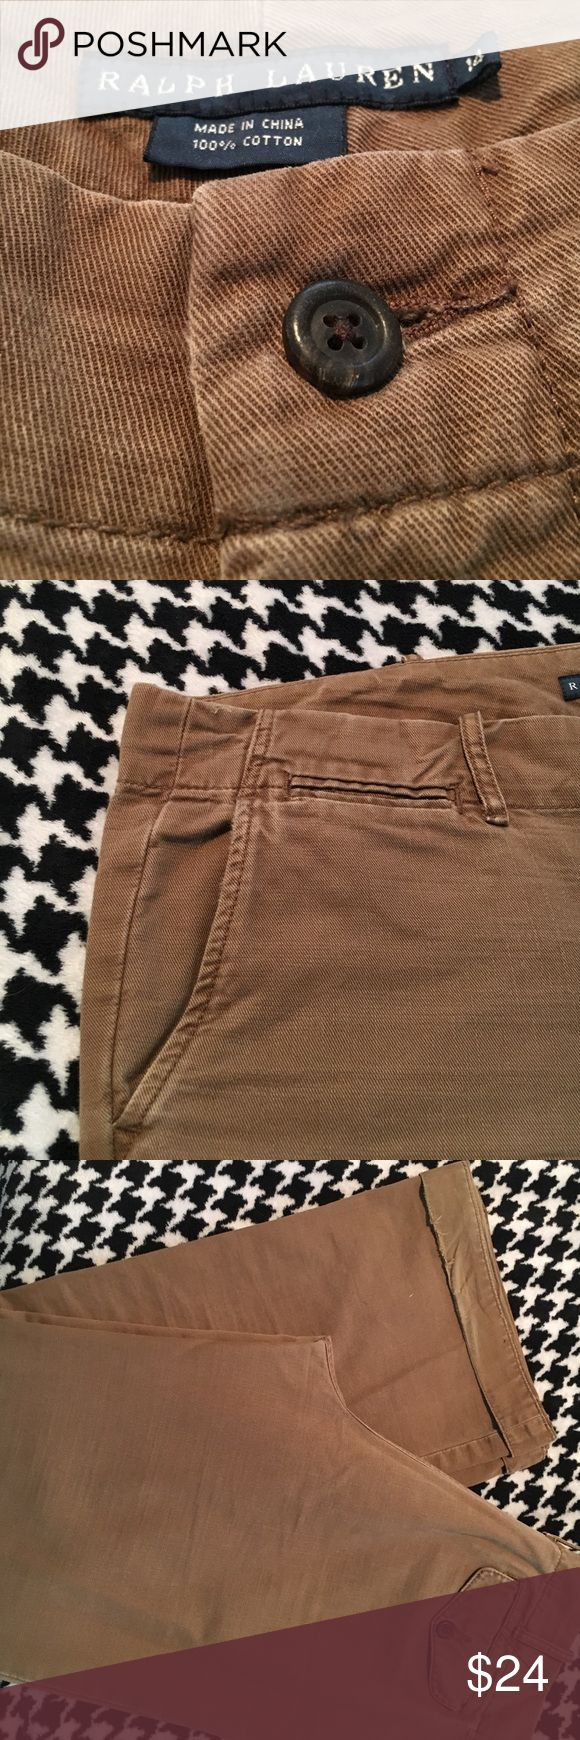 """Brown Ralph Lauren Trouser Chinos Sz 14 Button Closure. Flap pockets. About 30"""" inseam cuffed how i wore them sometimes & almost 32"""" uncuffed. There is some wear from wearing them both ways- shown in picture. Let me know if you have any questions. Ralph Lauren Pants Trousers"""